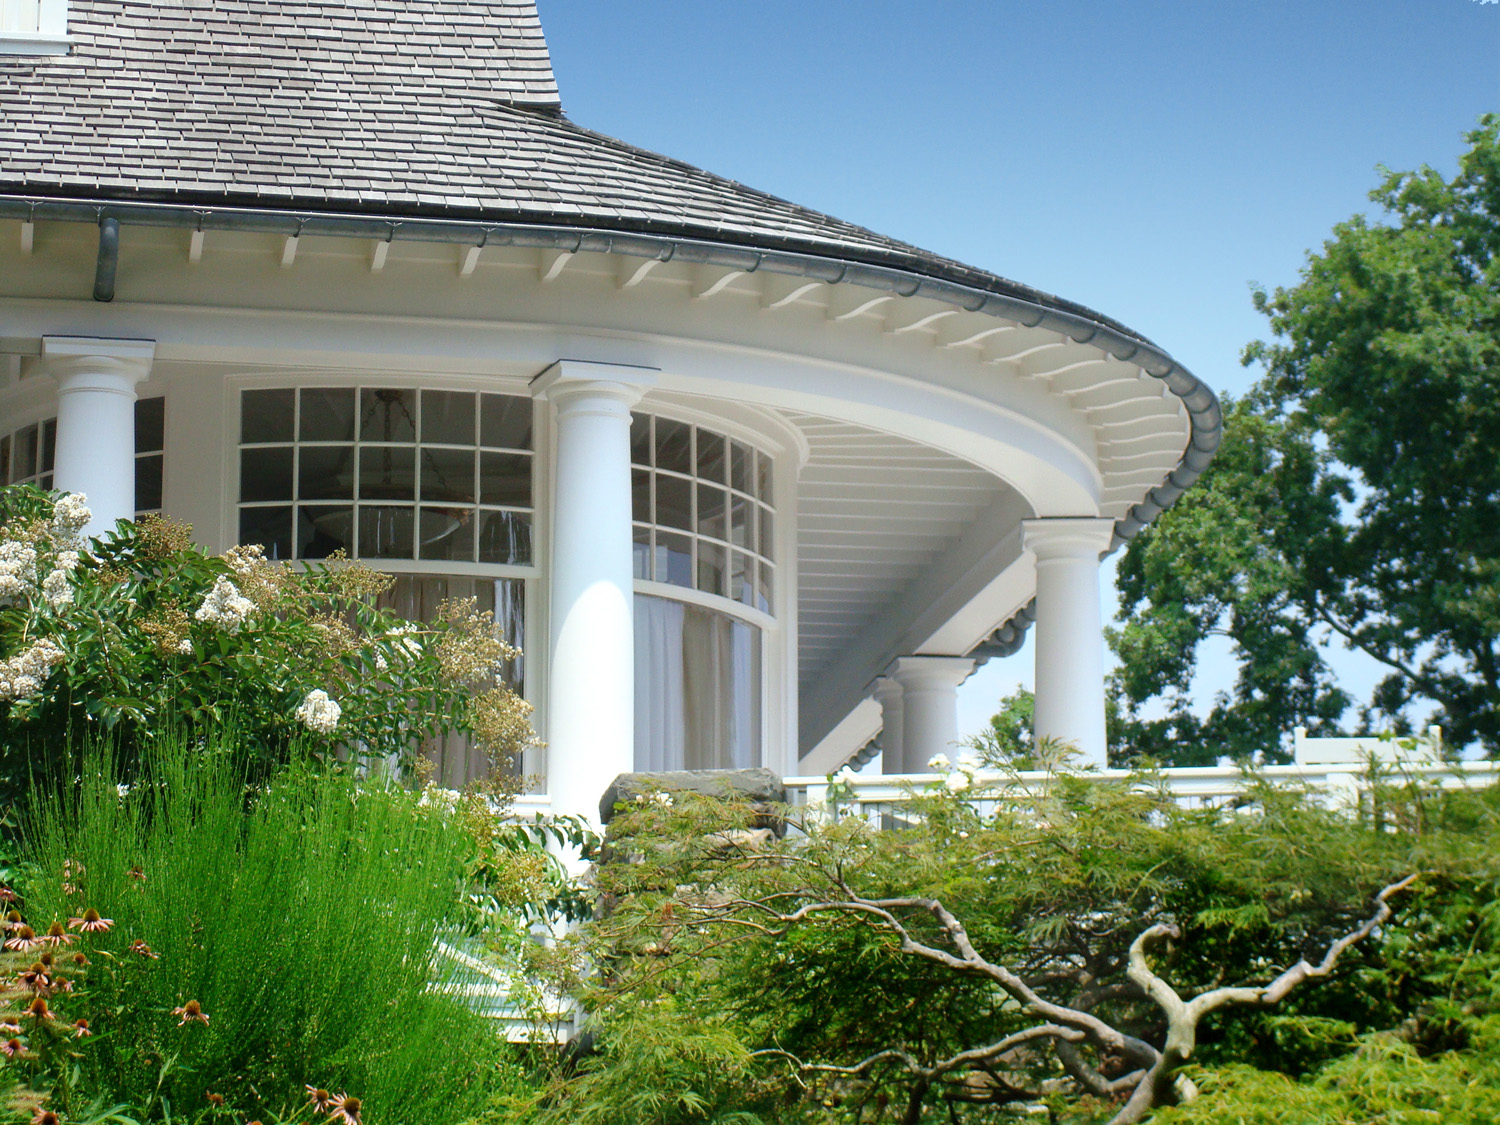 Shingle-new-construction-curved-porch-landscaping-westport-ct-exterior-w.jpg